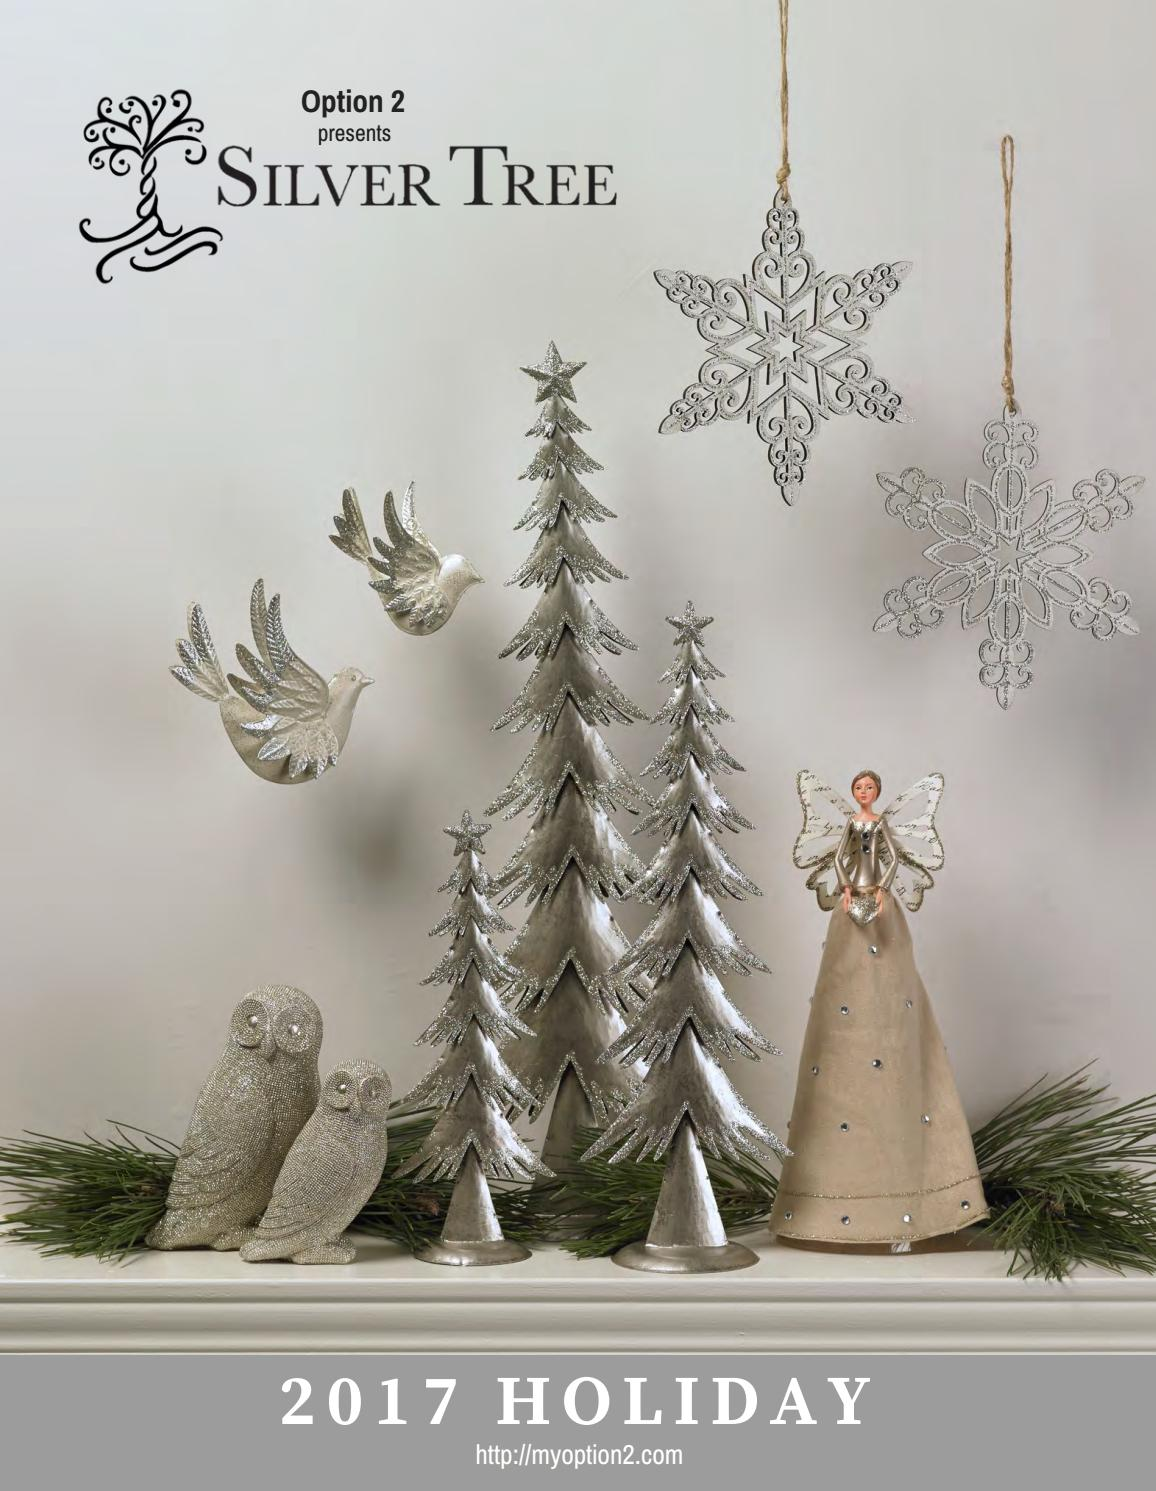 FOREST FROST GLITTER DEER TREES BIRDS SNOWFLAKES FABRIC SILVER GLITTER NO 15